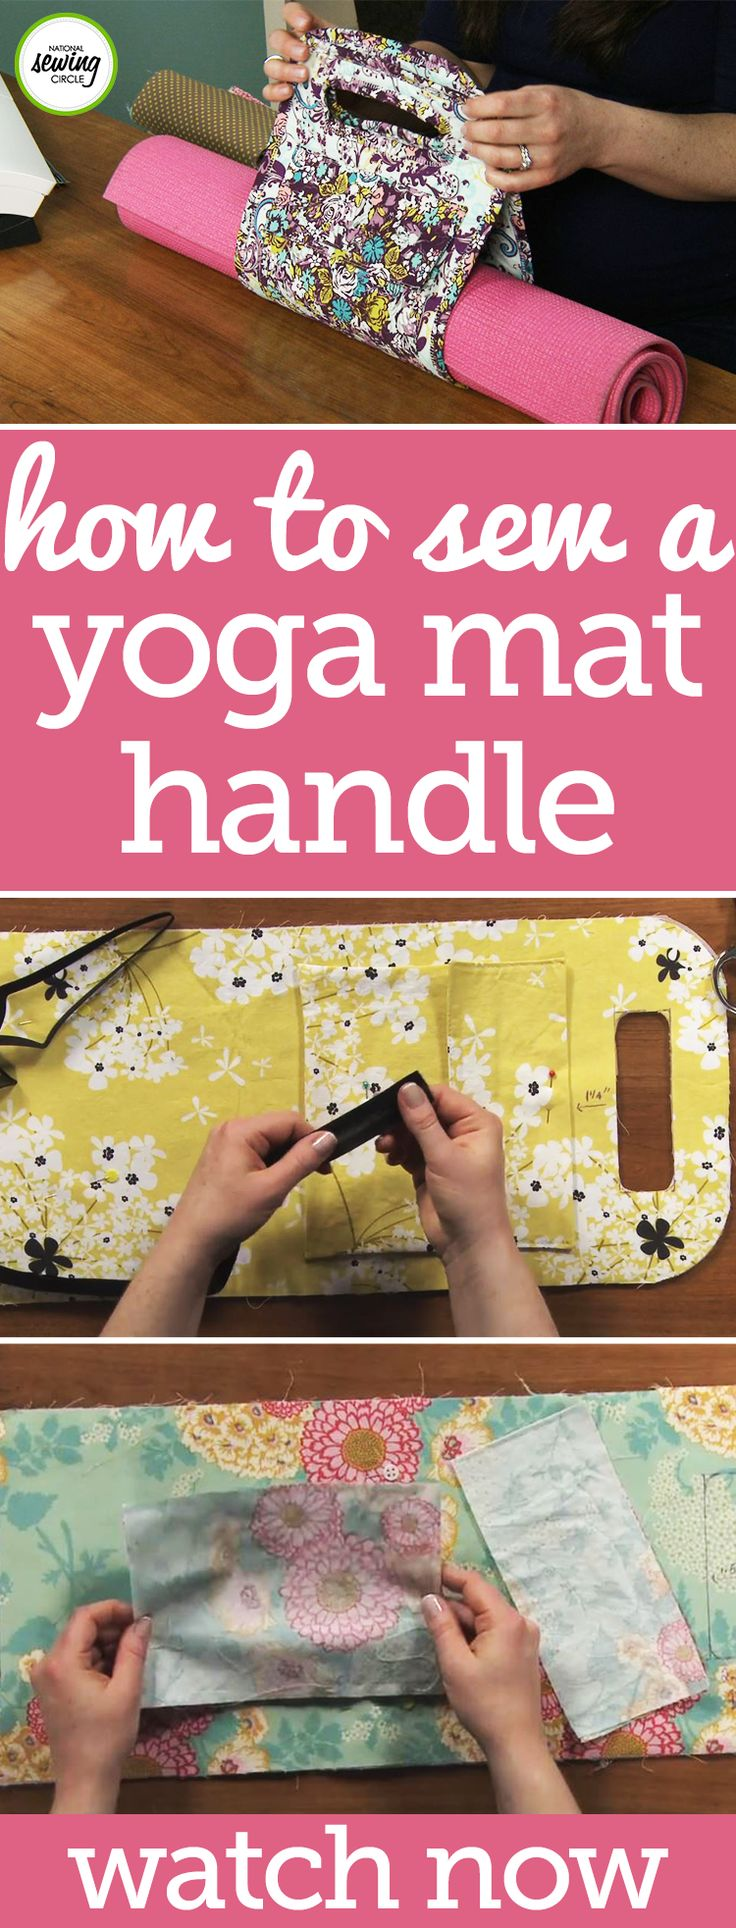 Carry your yoga mat to class in style with a fun carrying handle complete with a velcro pocket! Follow along as Stacy Grissom shows you how to measure for and make your handle using only a small amount of fabric, some fusible fleece, and bias tape. This easy to construct handle can be simply wrapped around your yoga mat for transport, or the design also allows you to slip one handle through the other in order to hold it tighter.